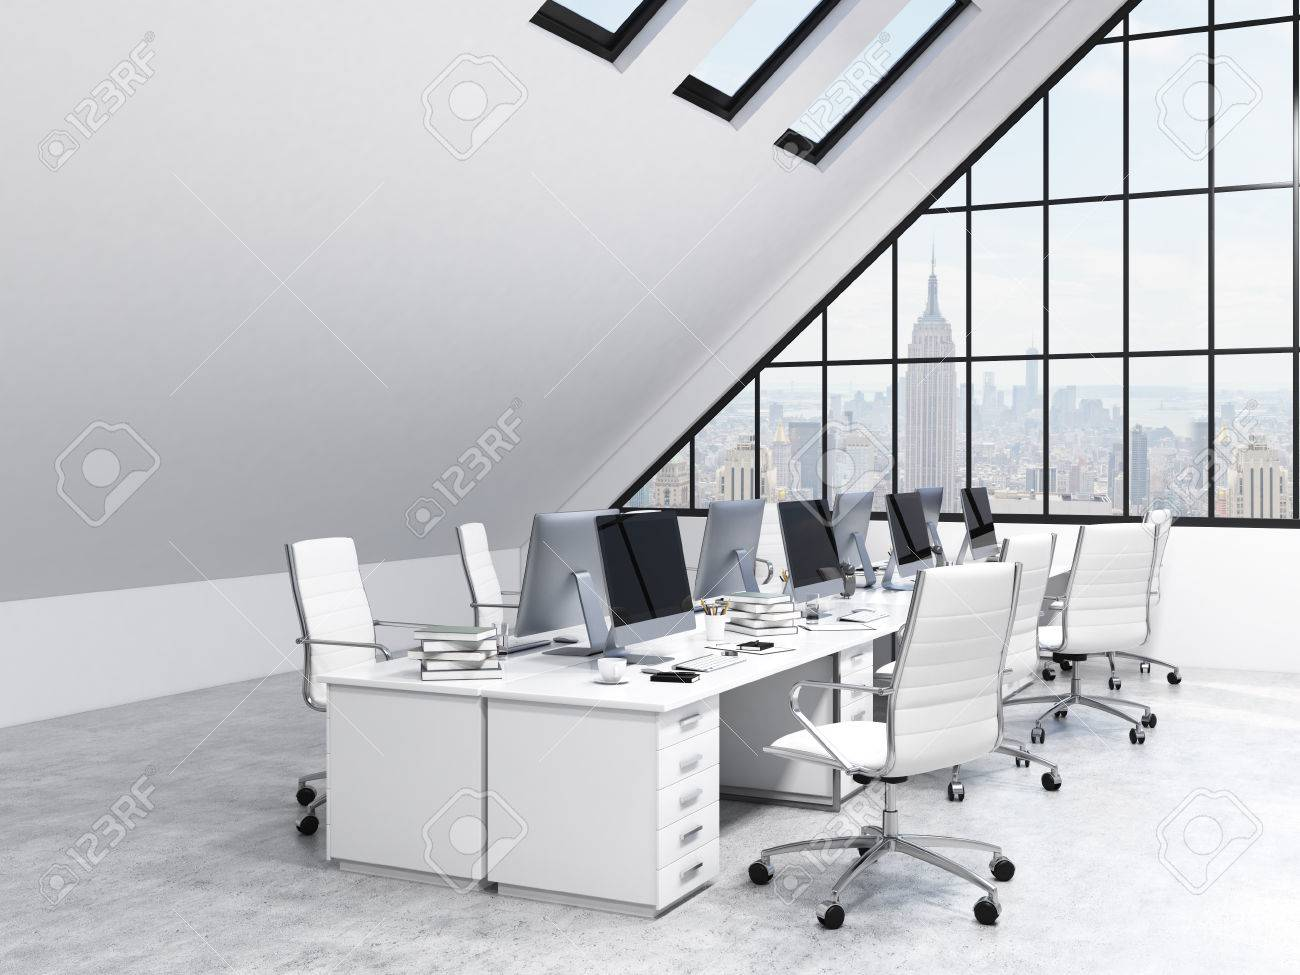 two rows of tables leading to the panoramic window in an office